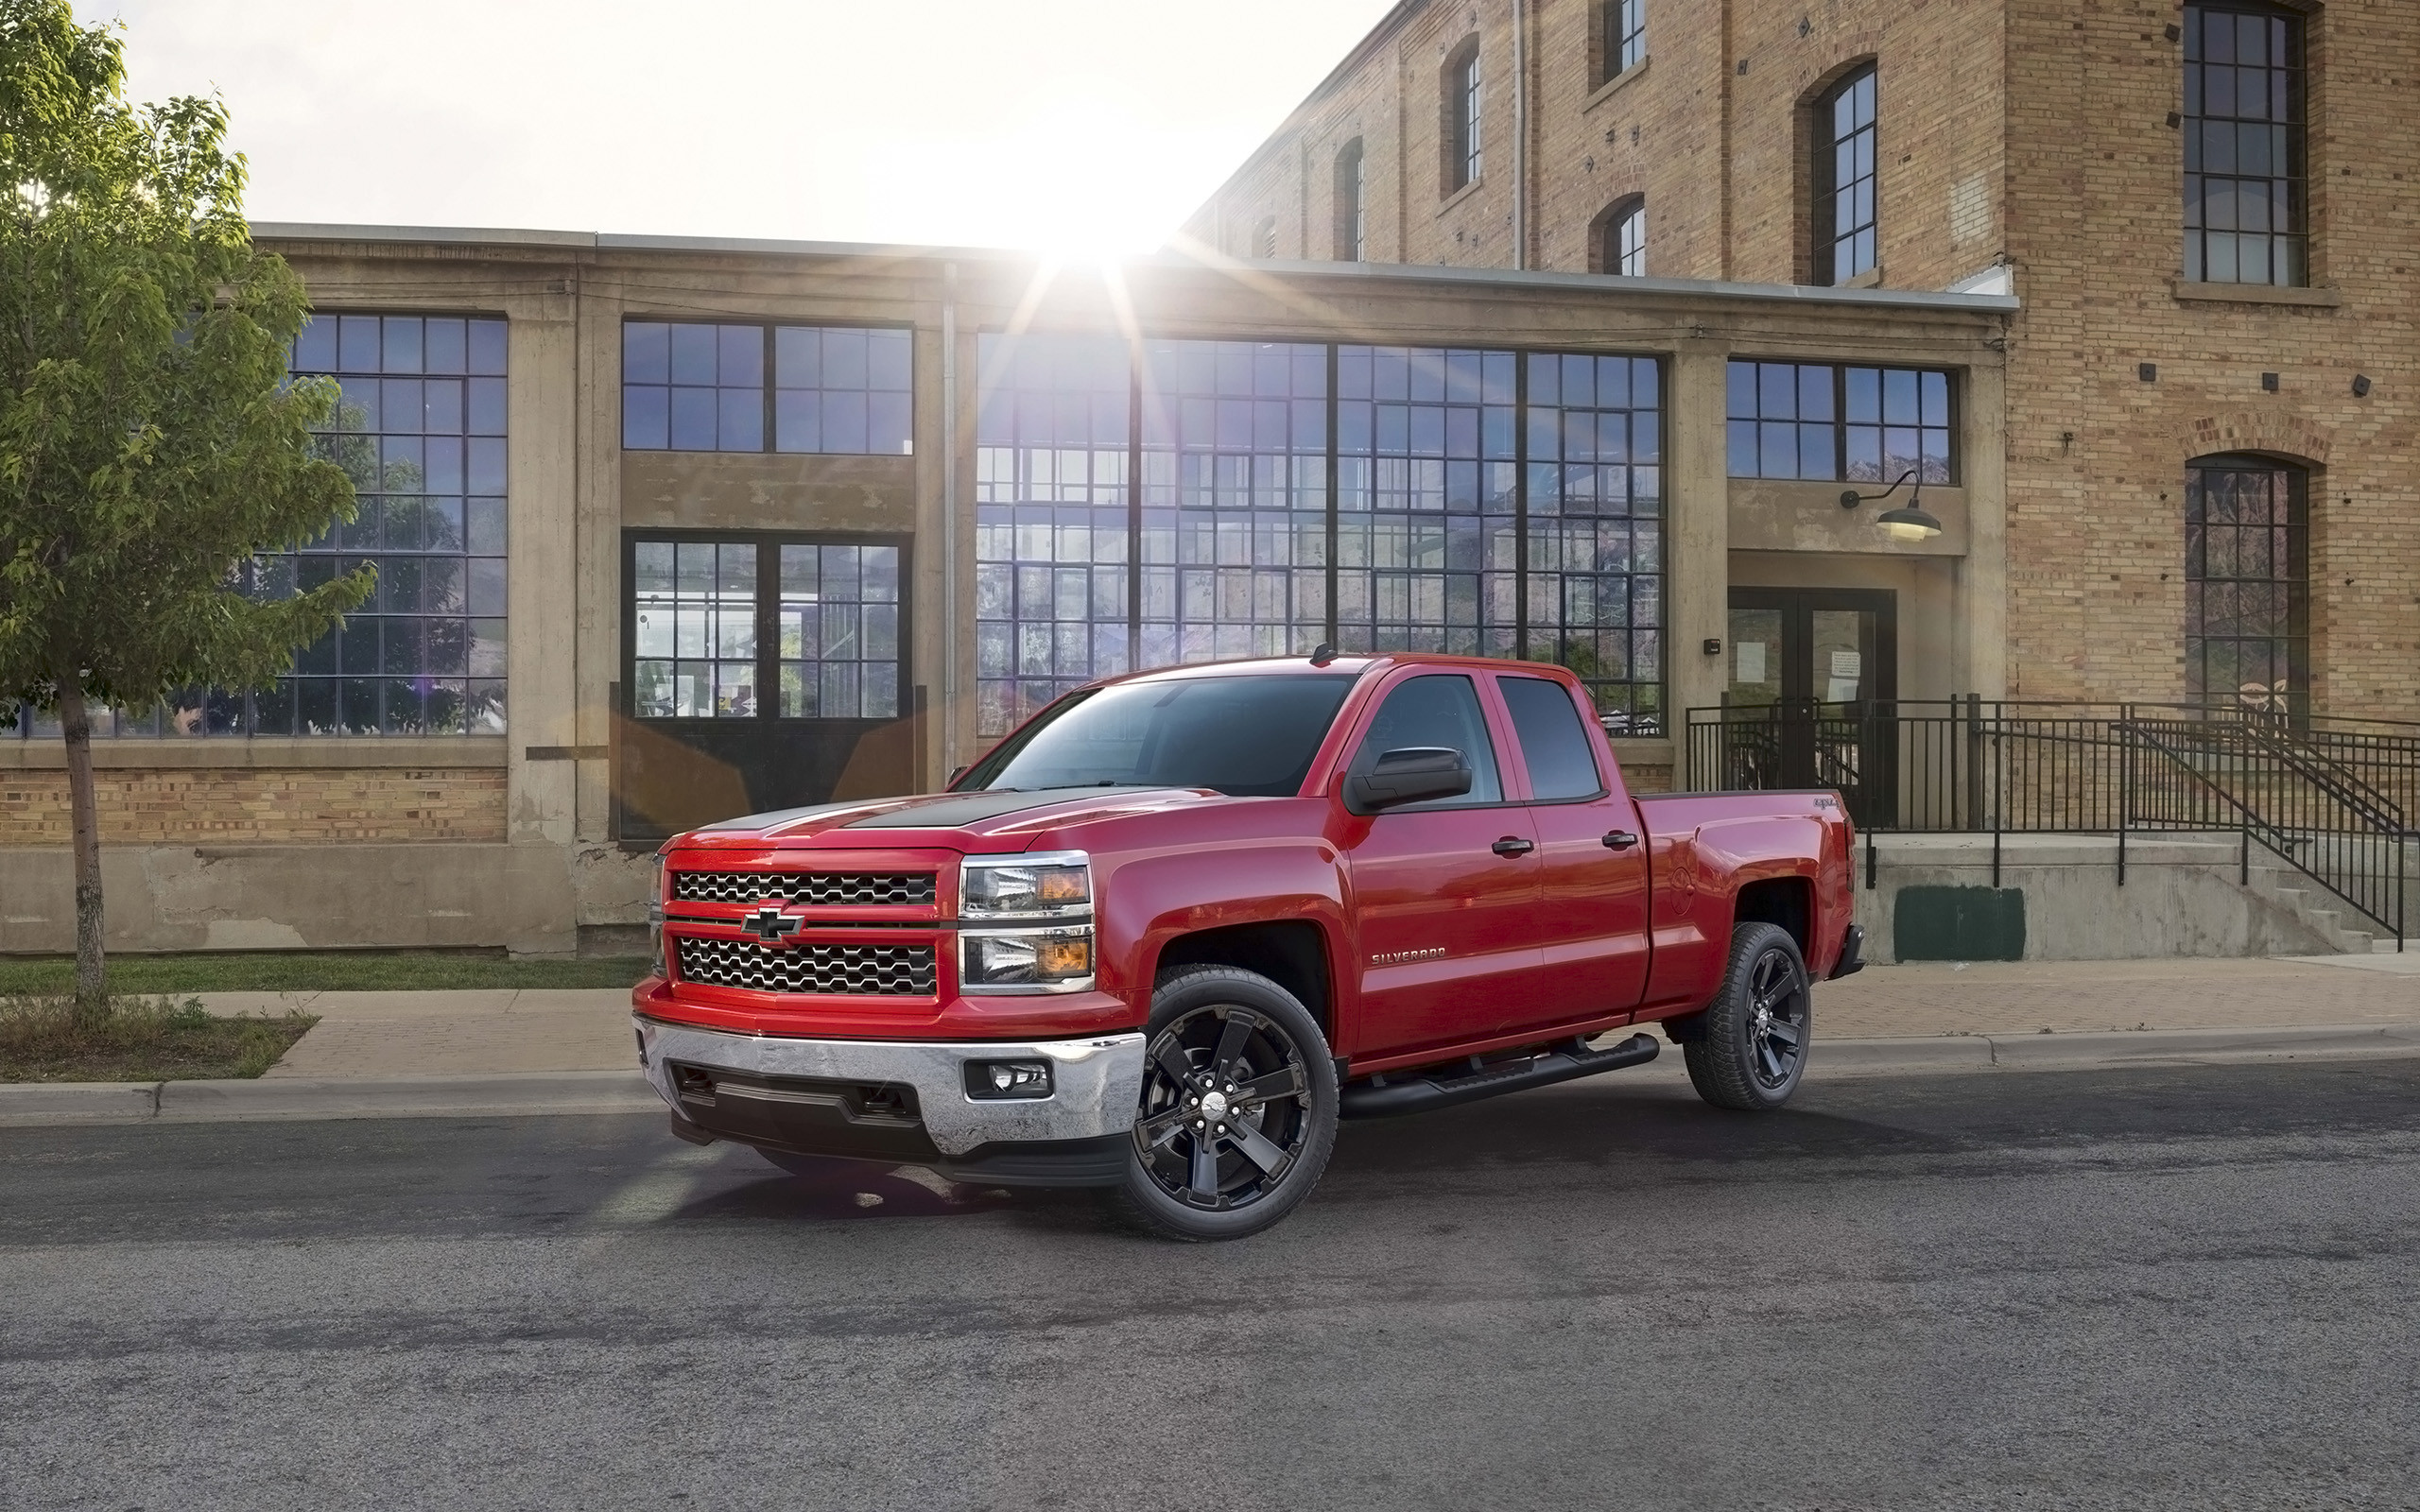 Chevy Truck Wallpaper Hd 48 Images